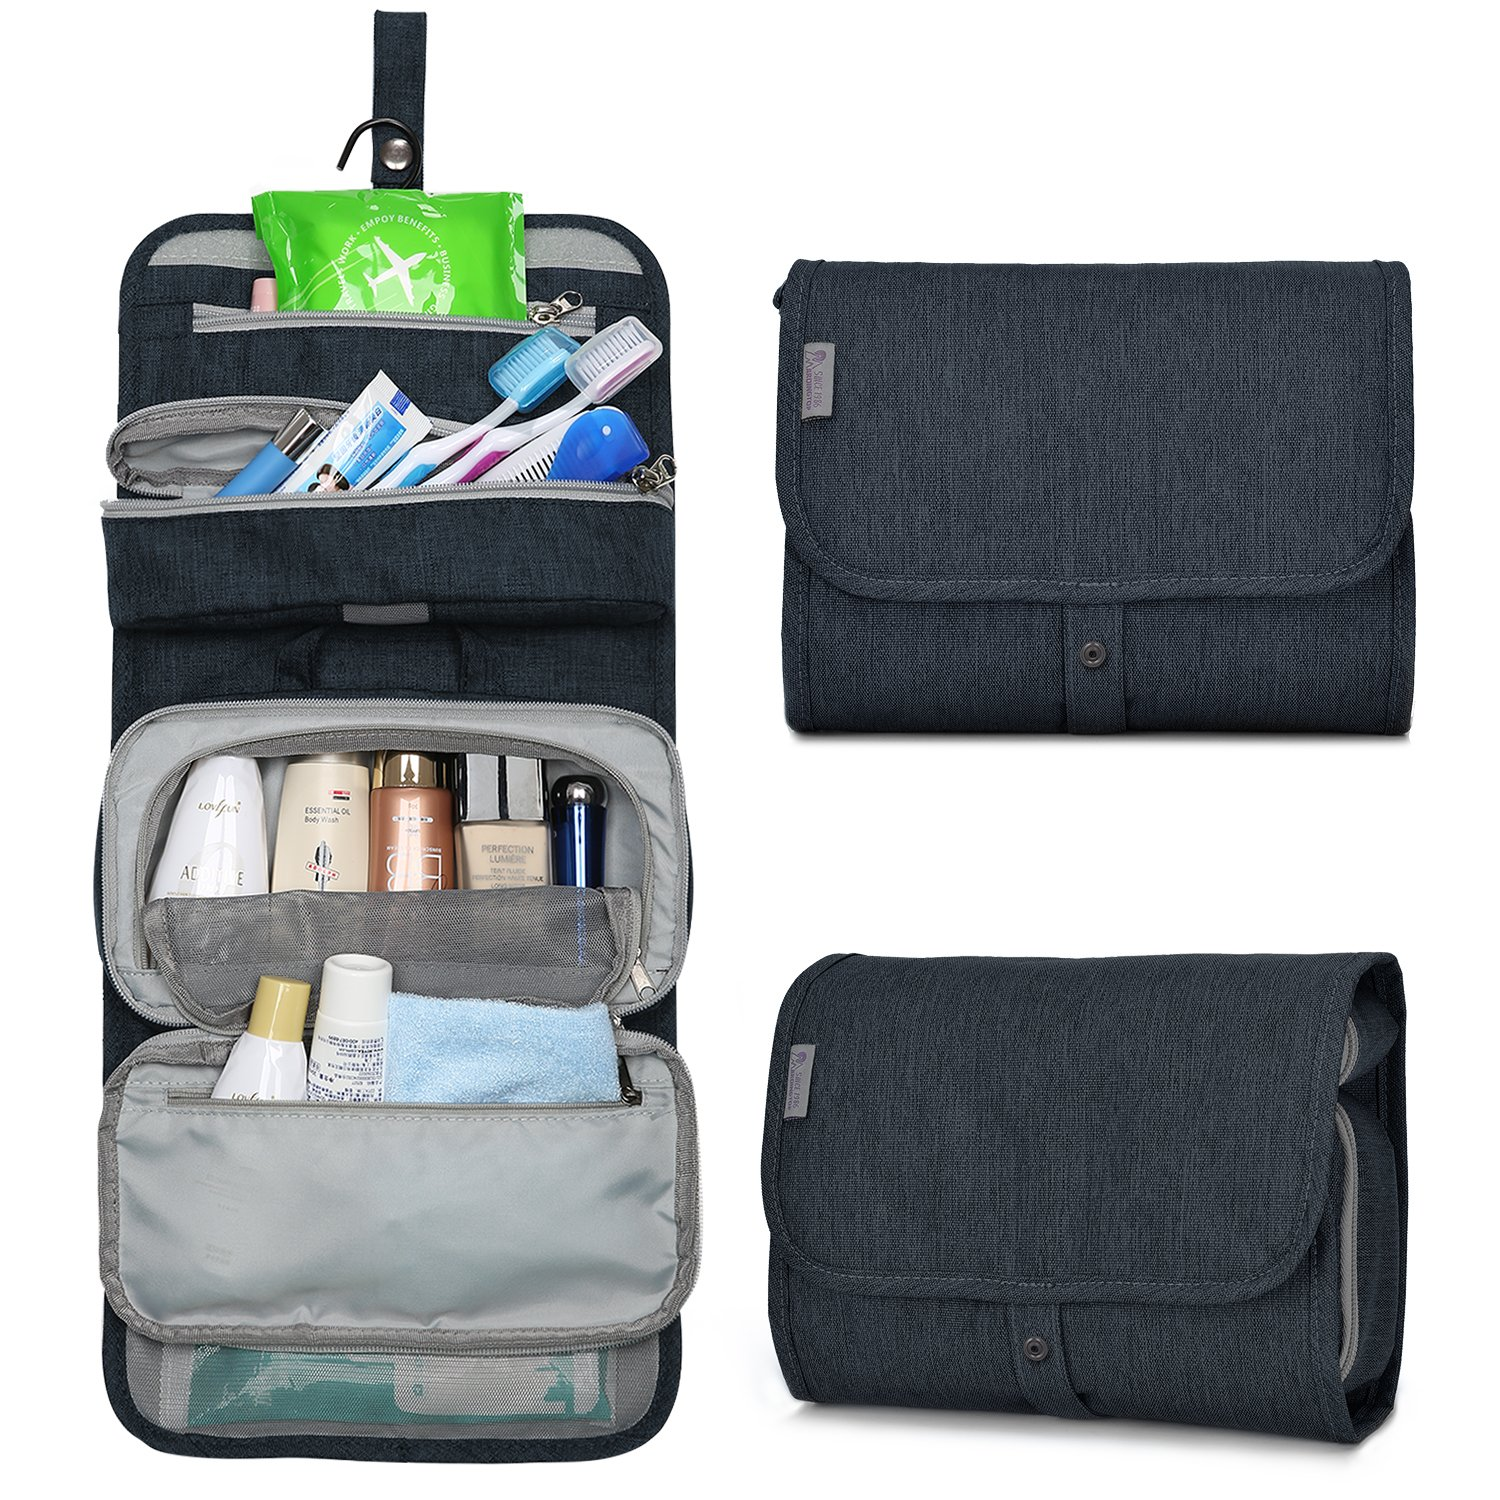 Mountaintop Hanging Travel Toiletry Bag, 7.1 x 2.4 x 9.3-Inch For Men & Women